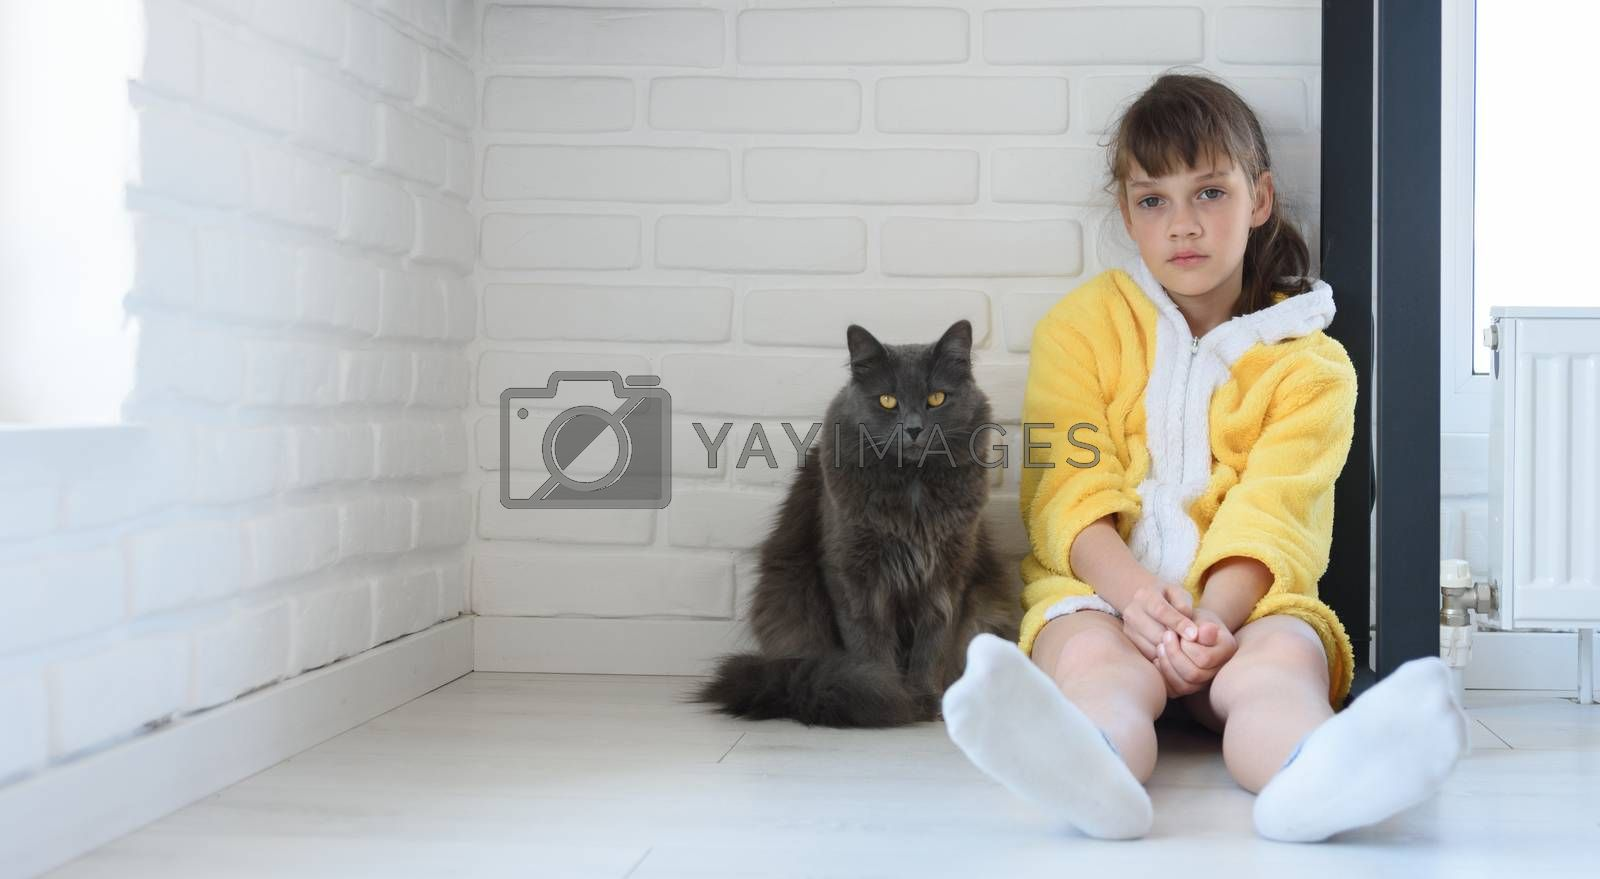 The punished girl sits in the corner of the room, a large domestic cat sits nearby by Madhourse